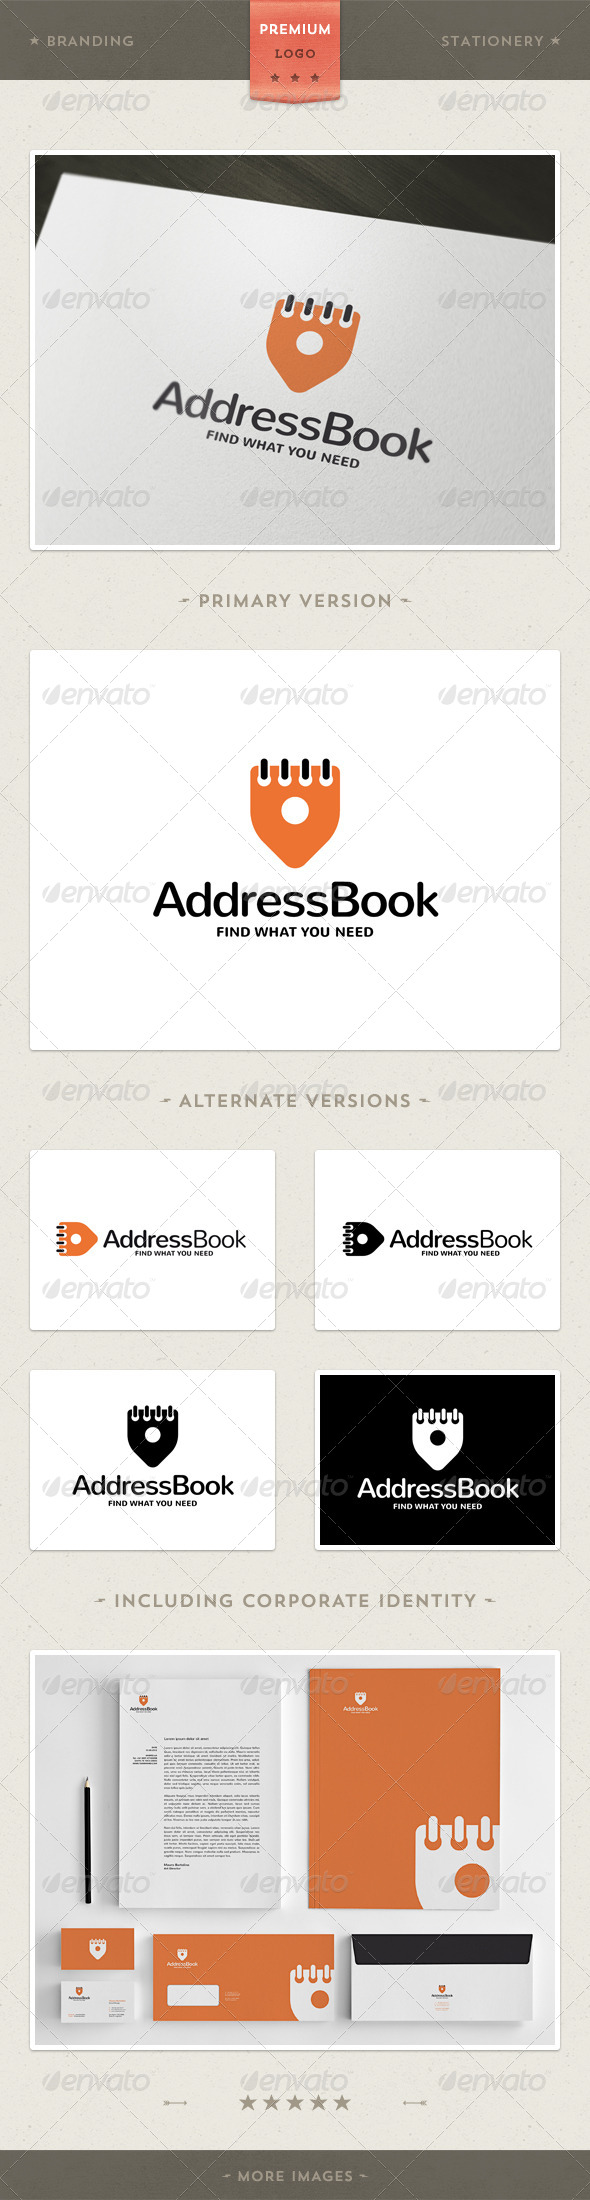 Adress Book - Logo + Corporate Identity - Objects Logo Templates